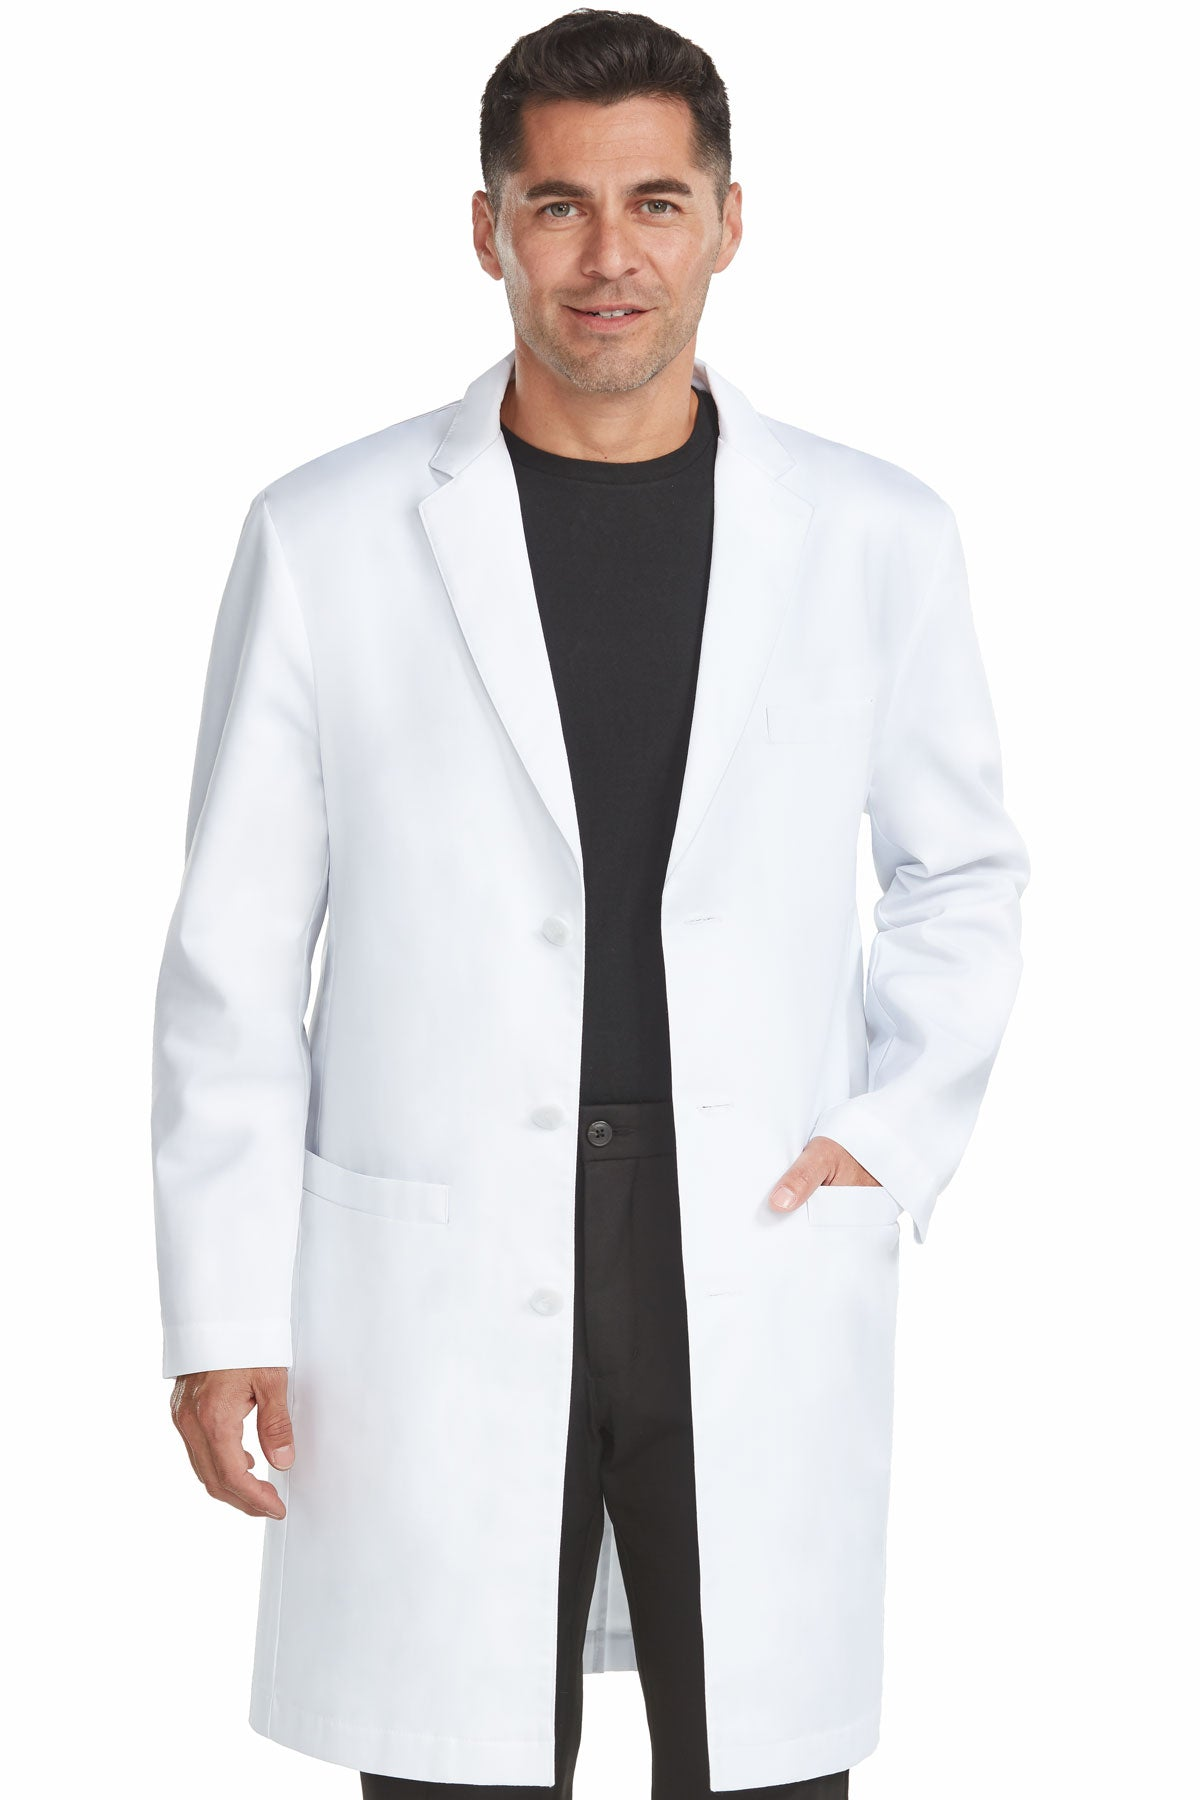 5590a1f0a61 Med Couture Lab Coats - My Legacy Health Scrubs and Medical Apparel